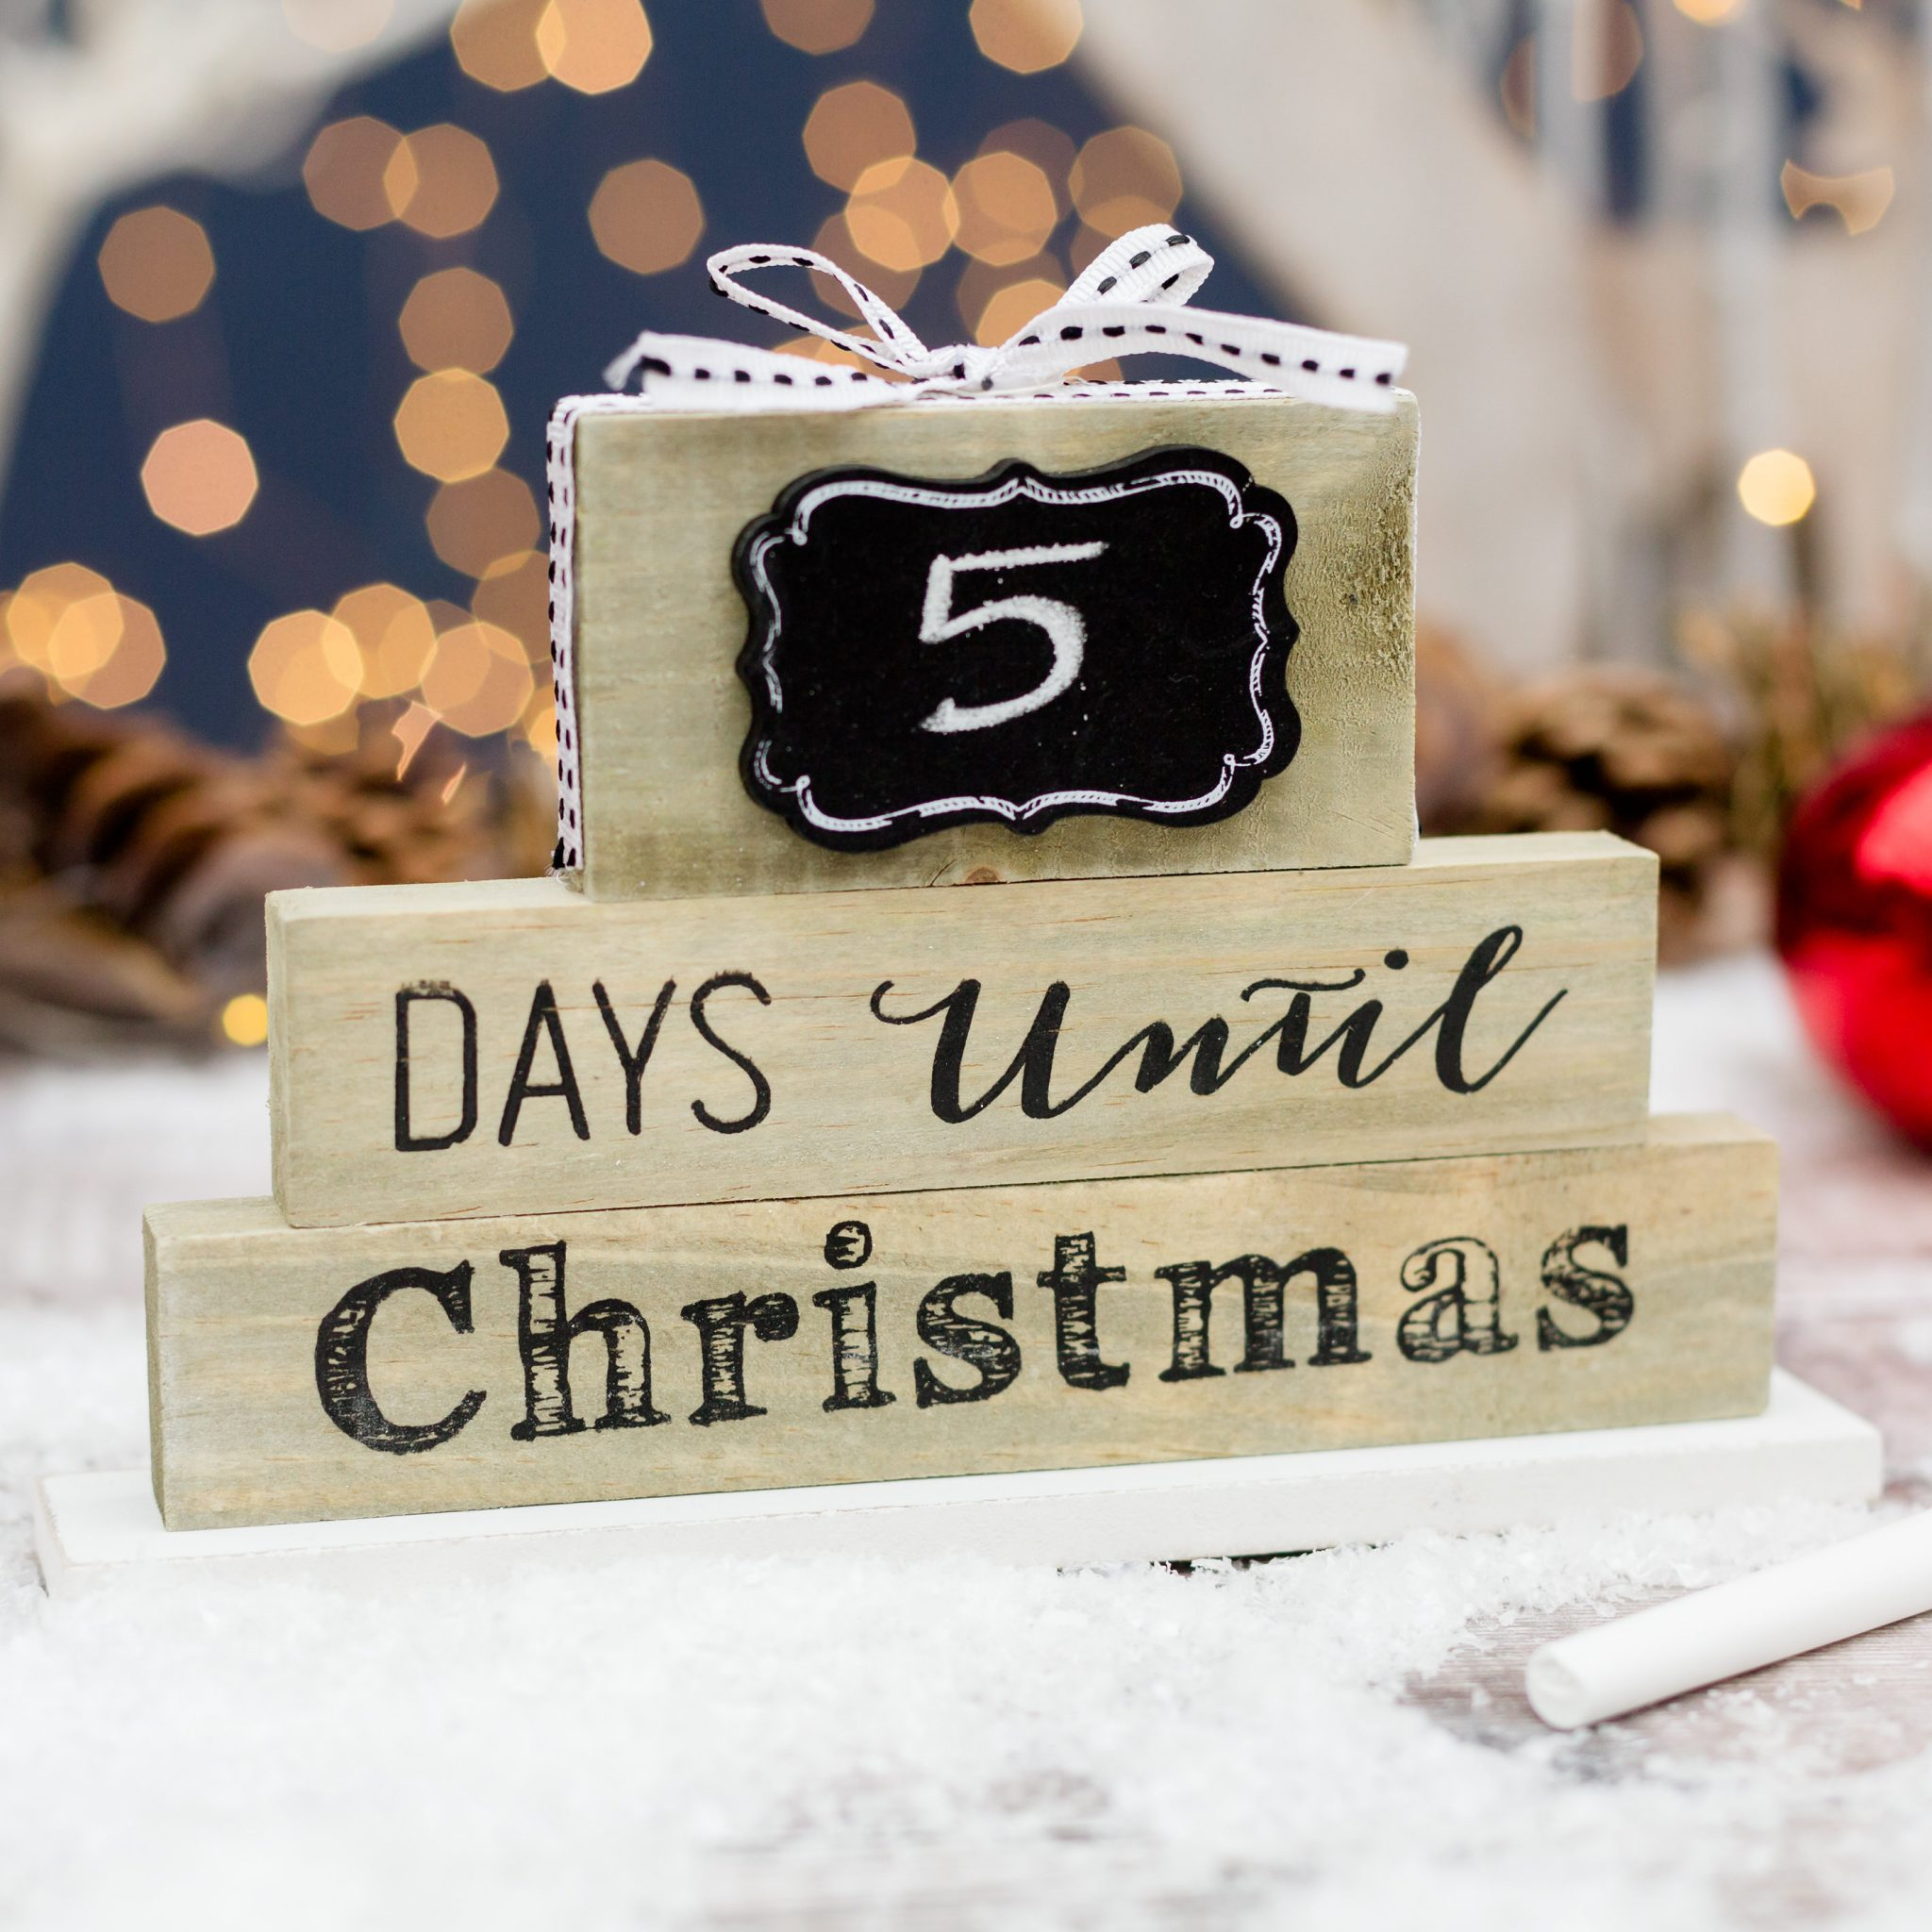 Days Till Christmas Chalkboard.Wooden Days Until Christmas Countdown Chalkboard